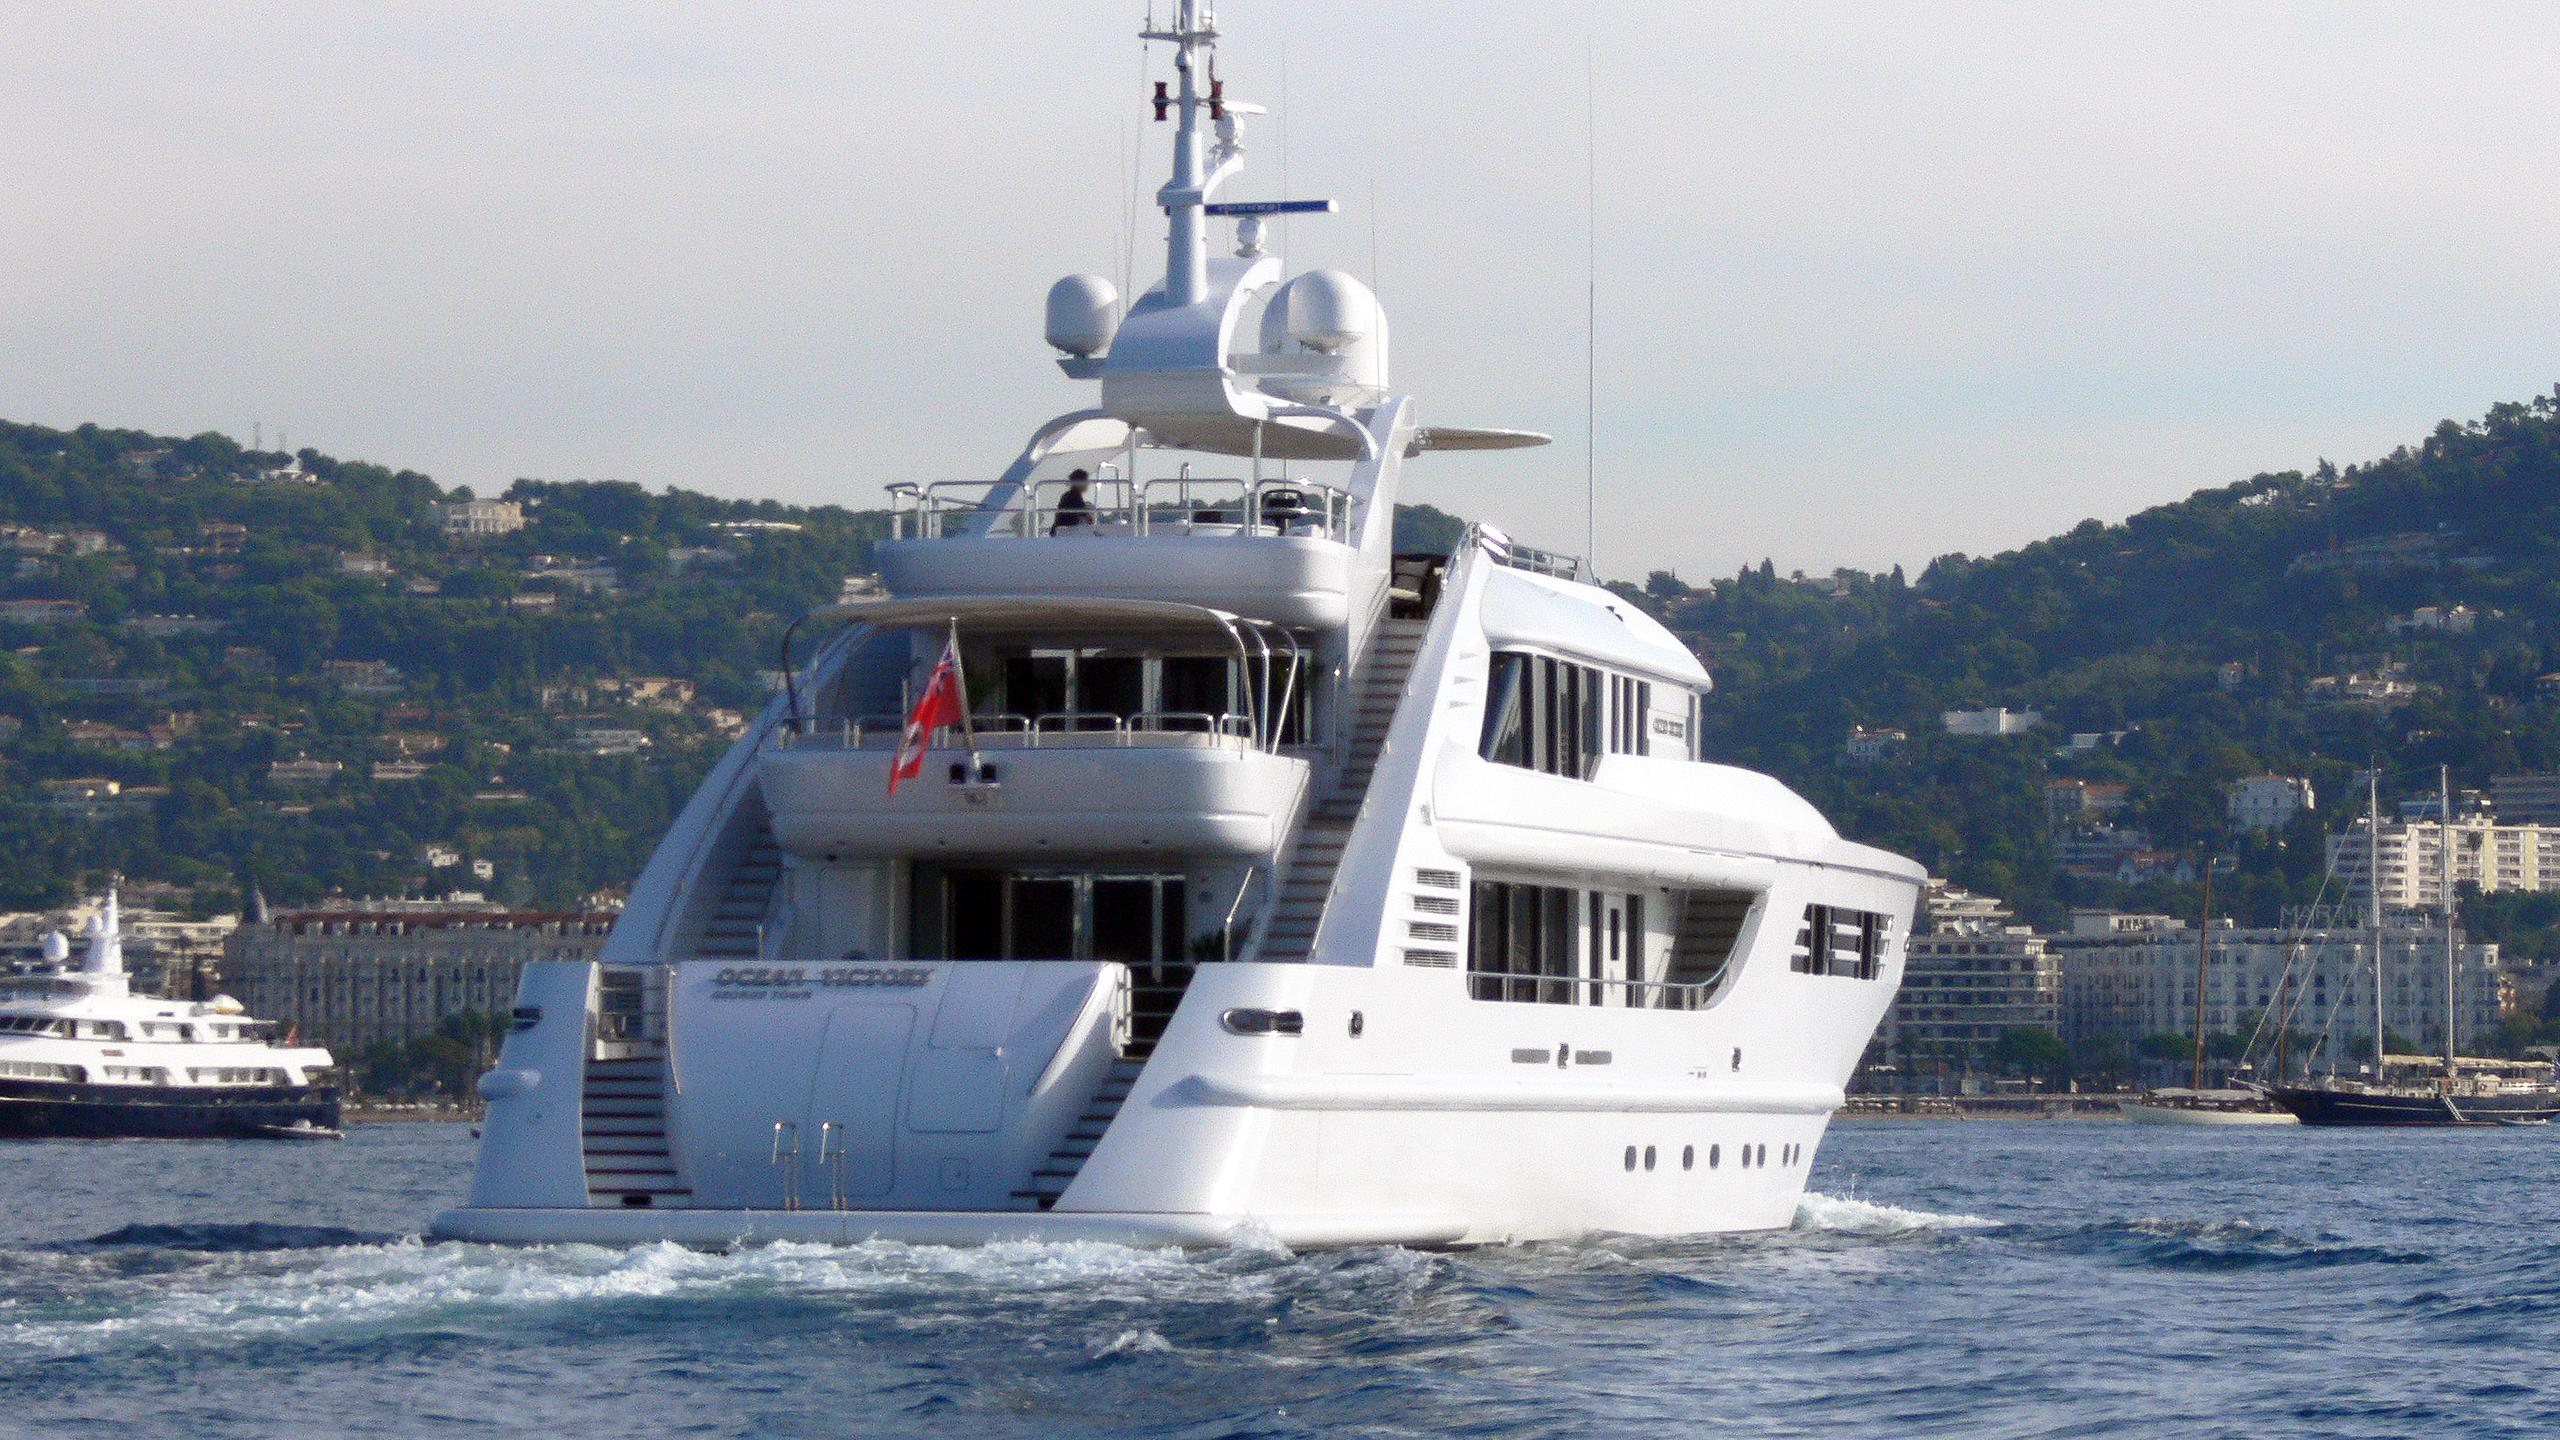 happy-days-motor-yacht-isa-470-2004-47m-stern